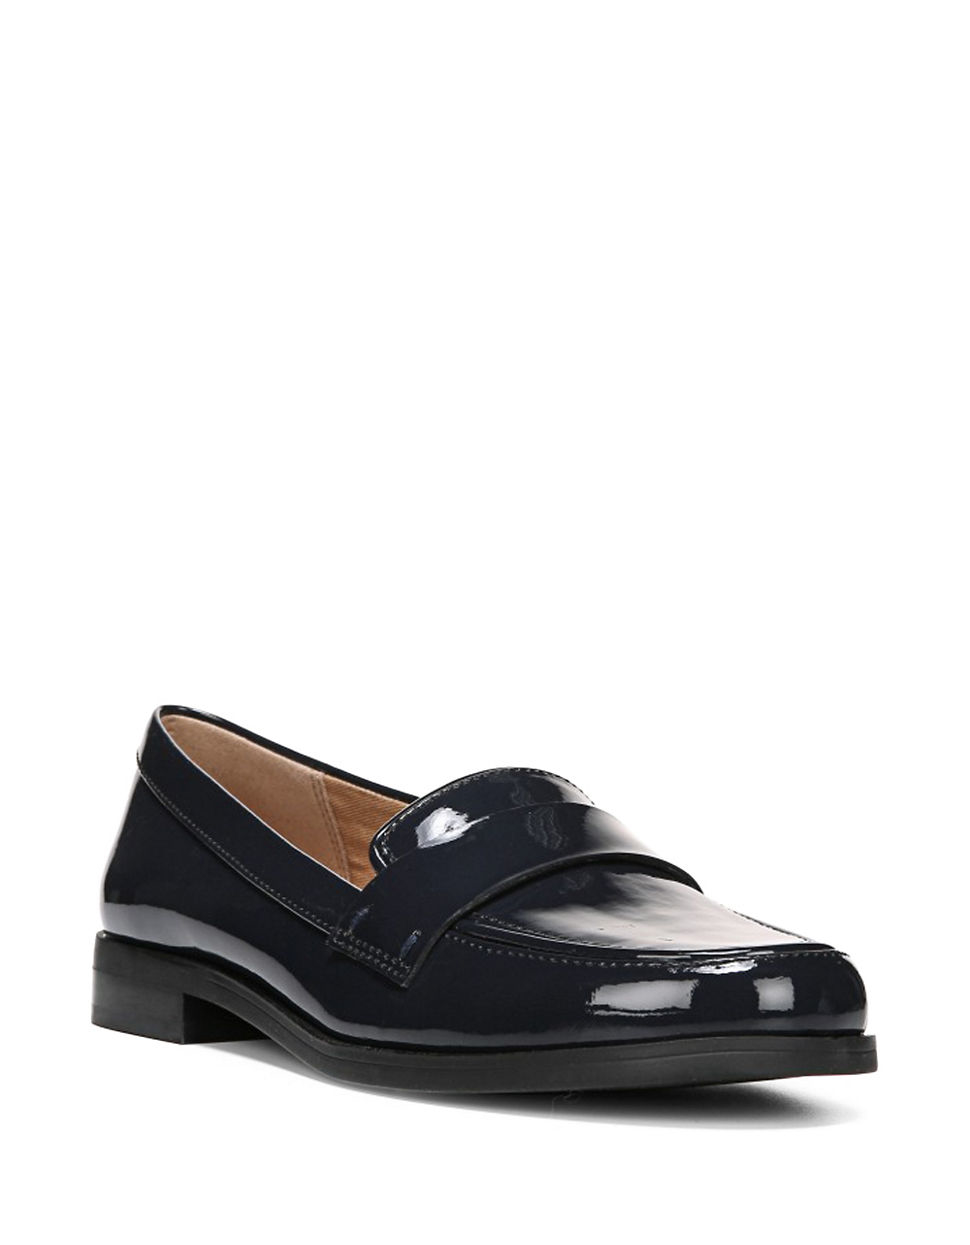 Lord And Taylor Shoe Sale